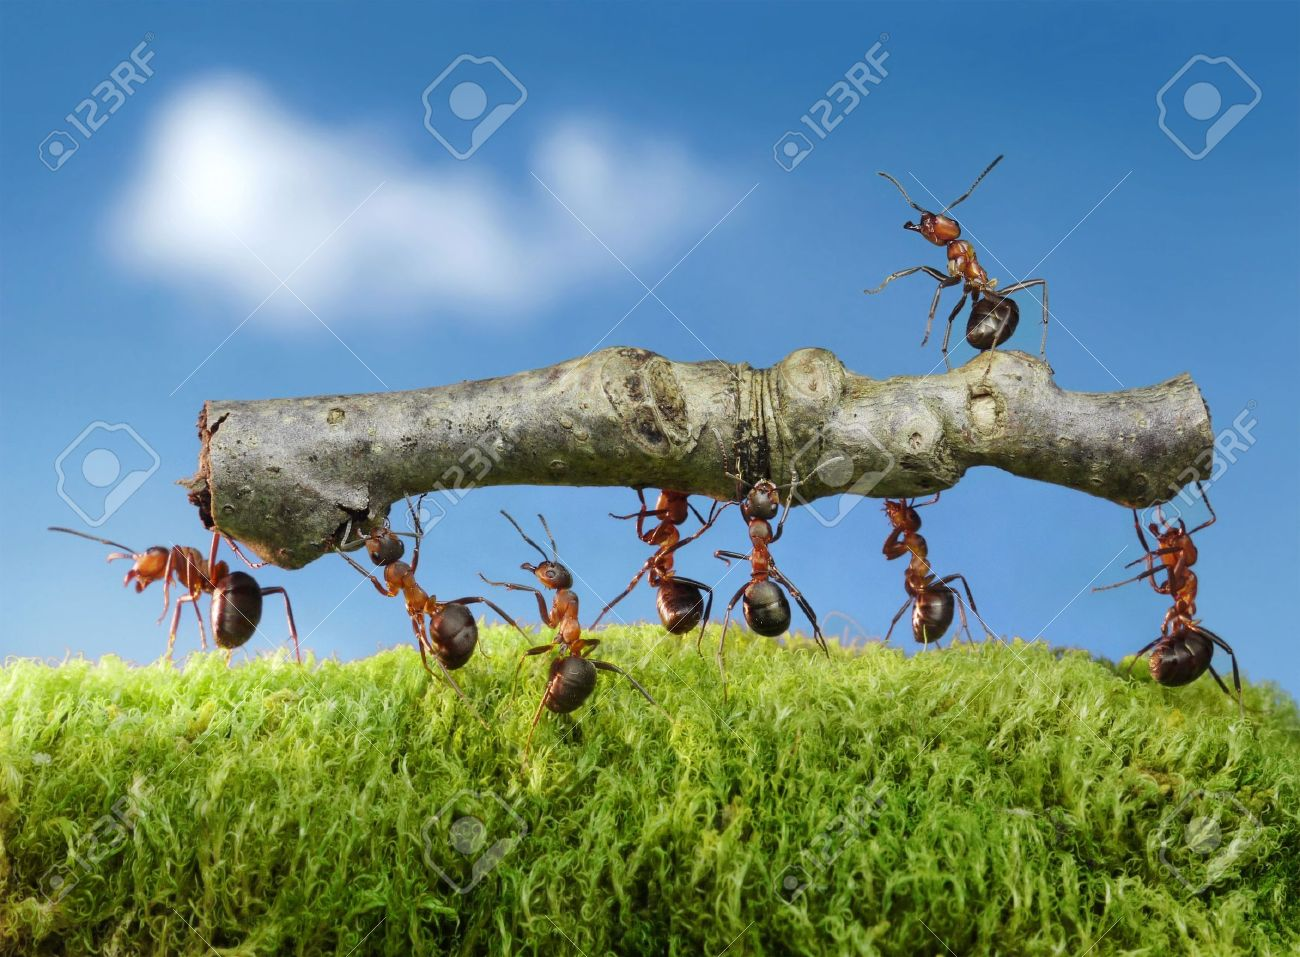 Ants Working Stock Photos And Images 123rf